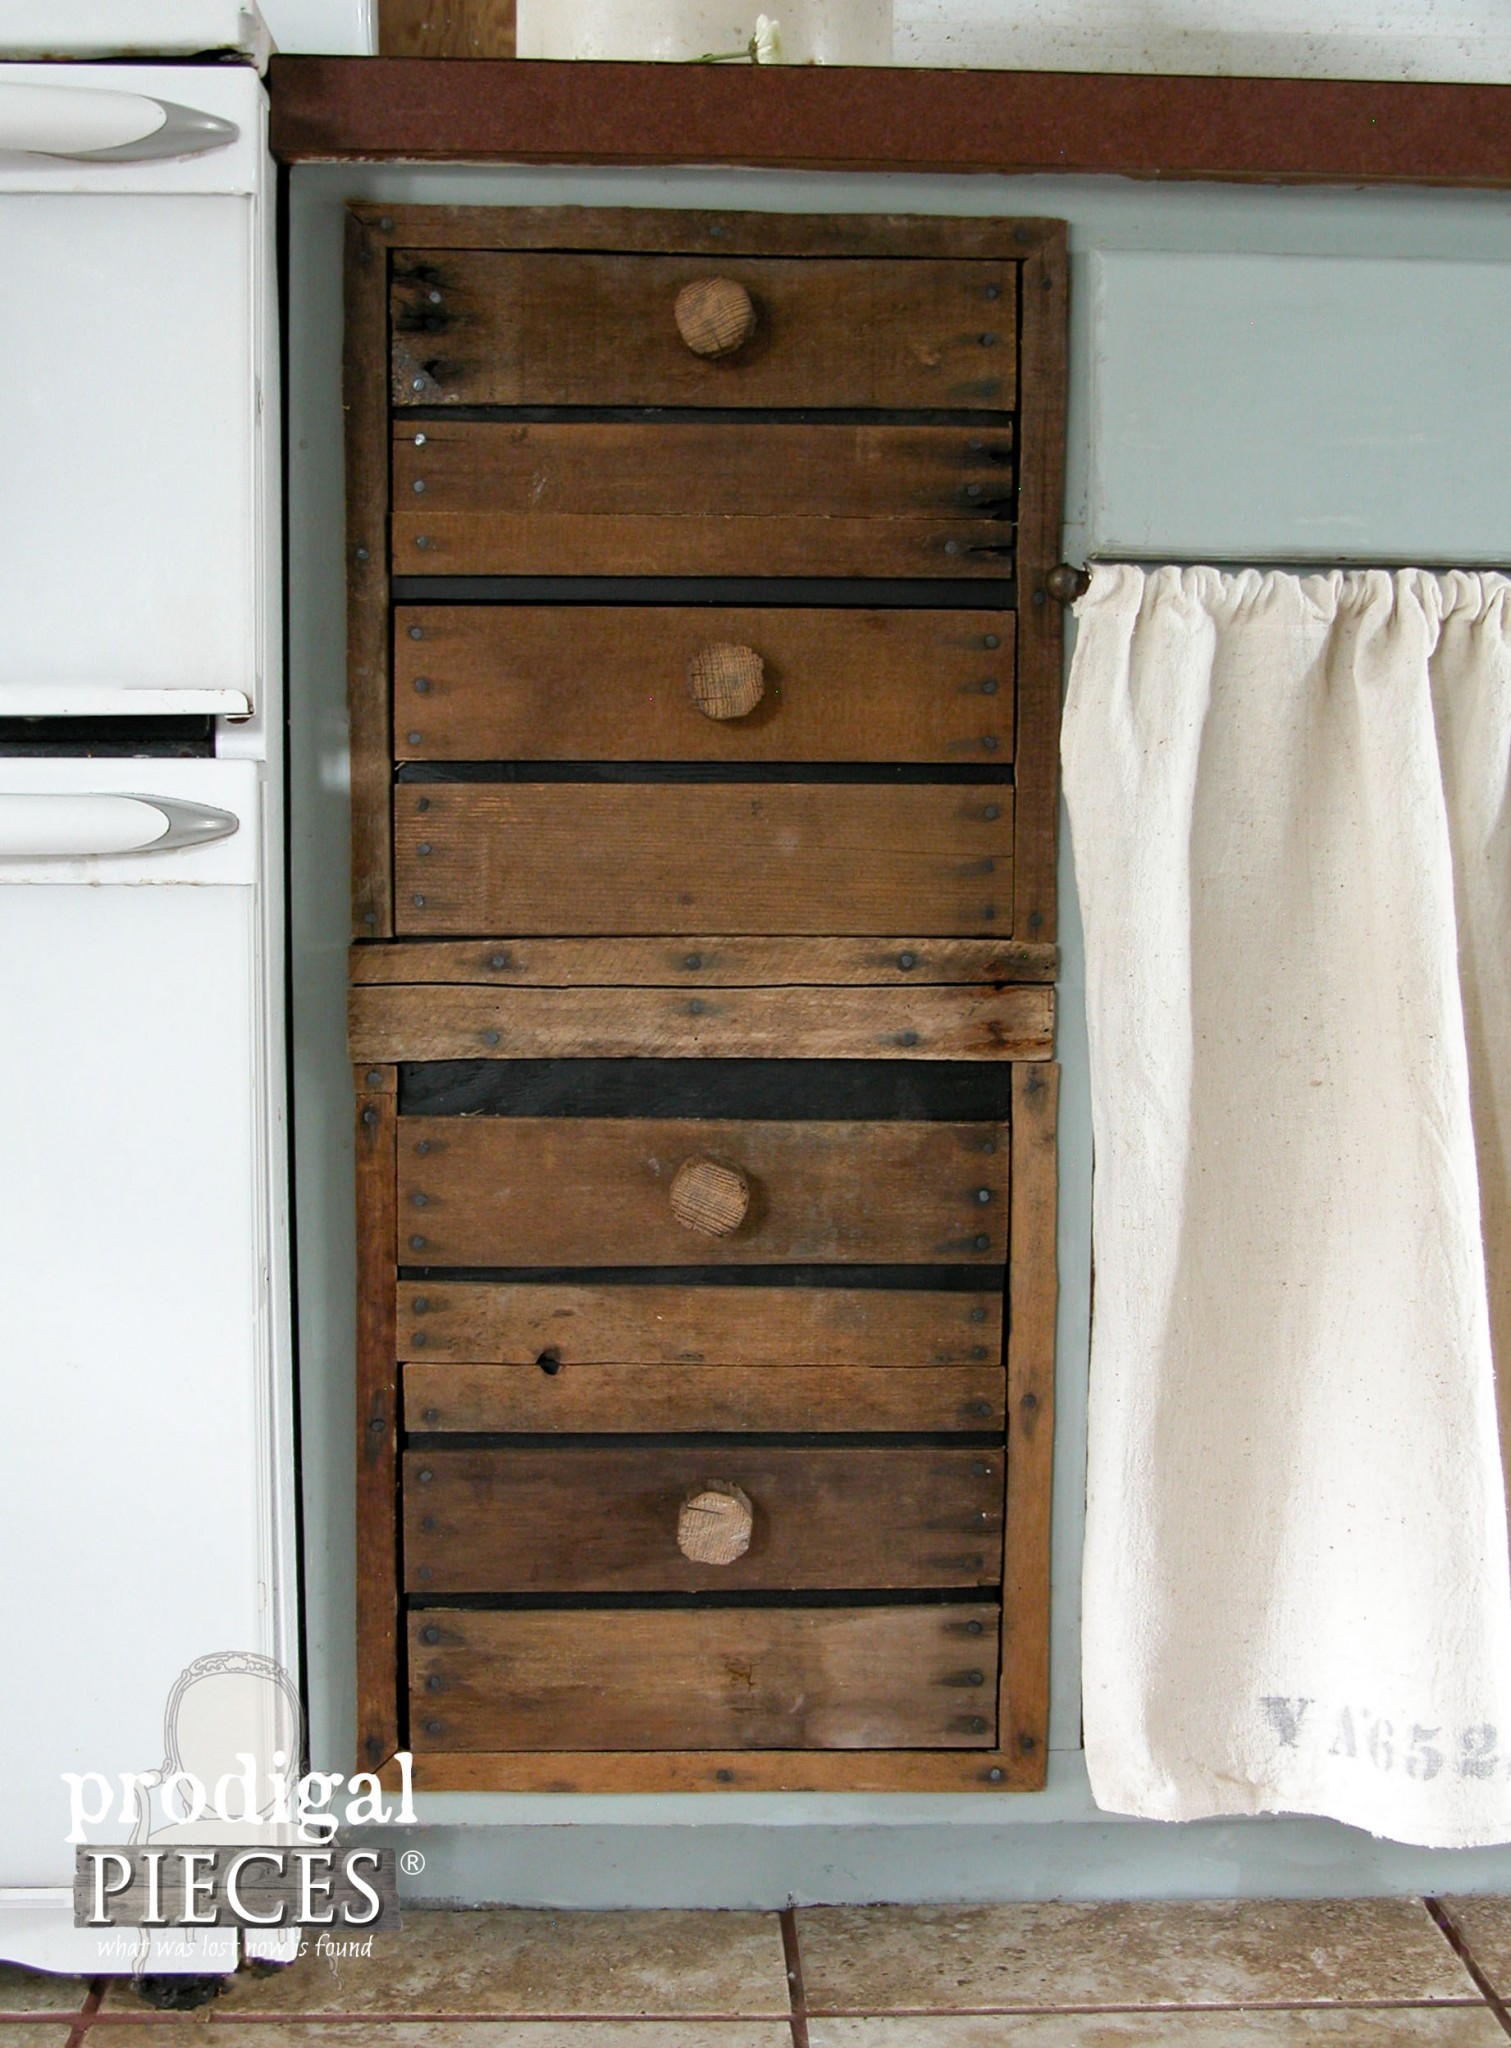 Rustic Farmhouse Kitchen Faux Crate Drawers by Prodigal Pieces | www.prodigalpieces.com